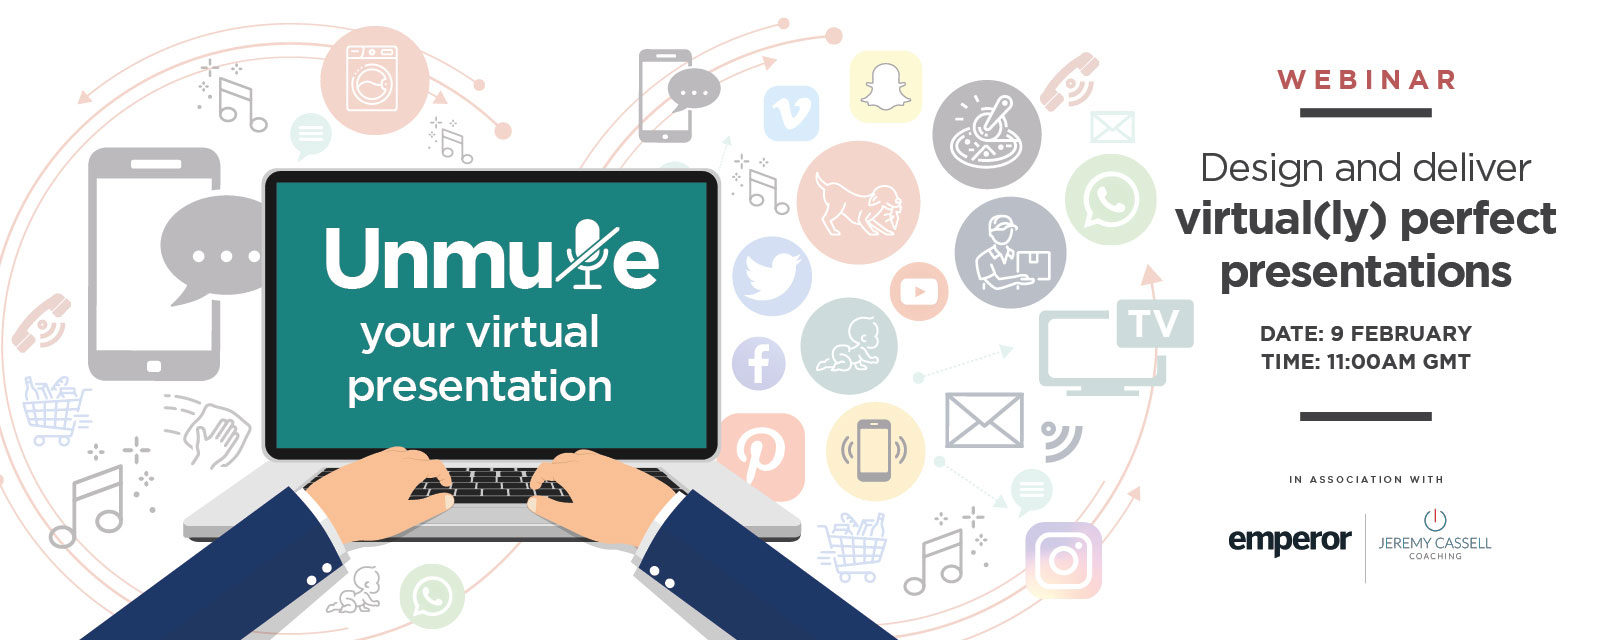 Unmute your virtual presentations